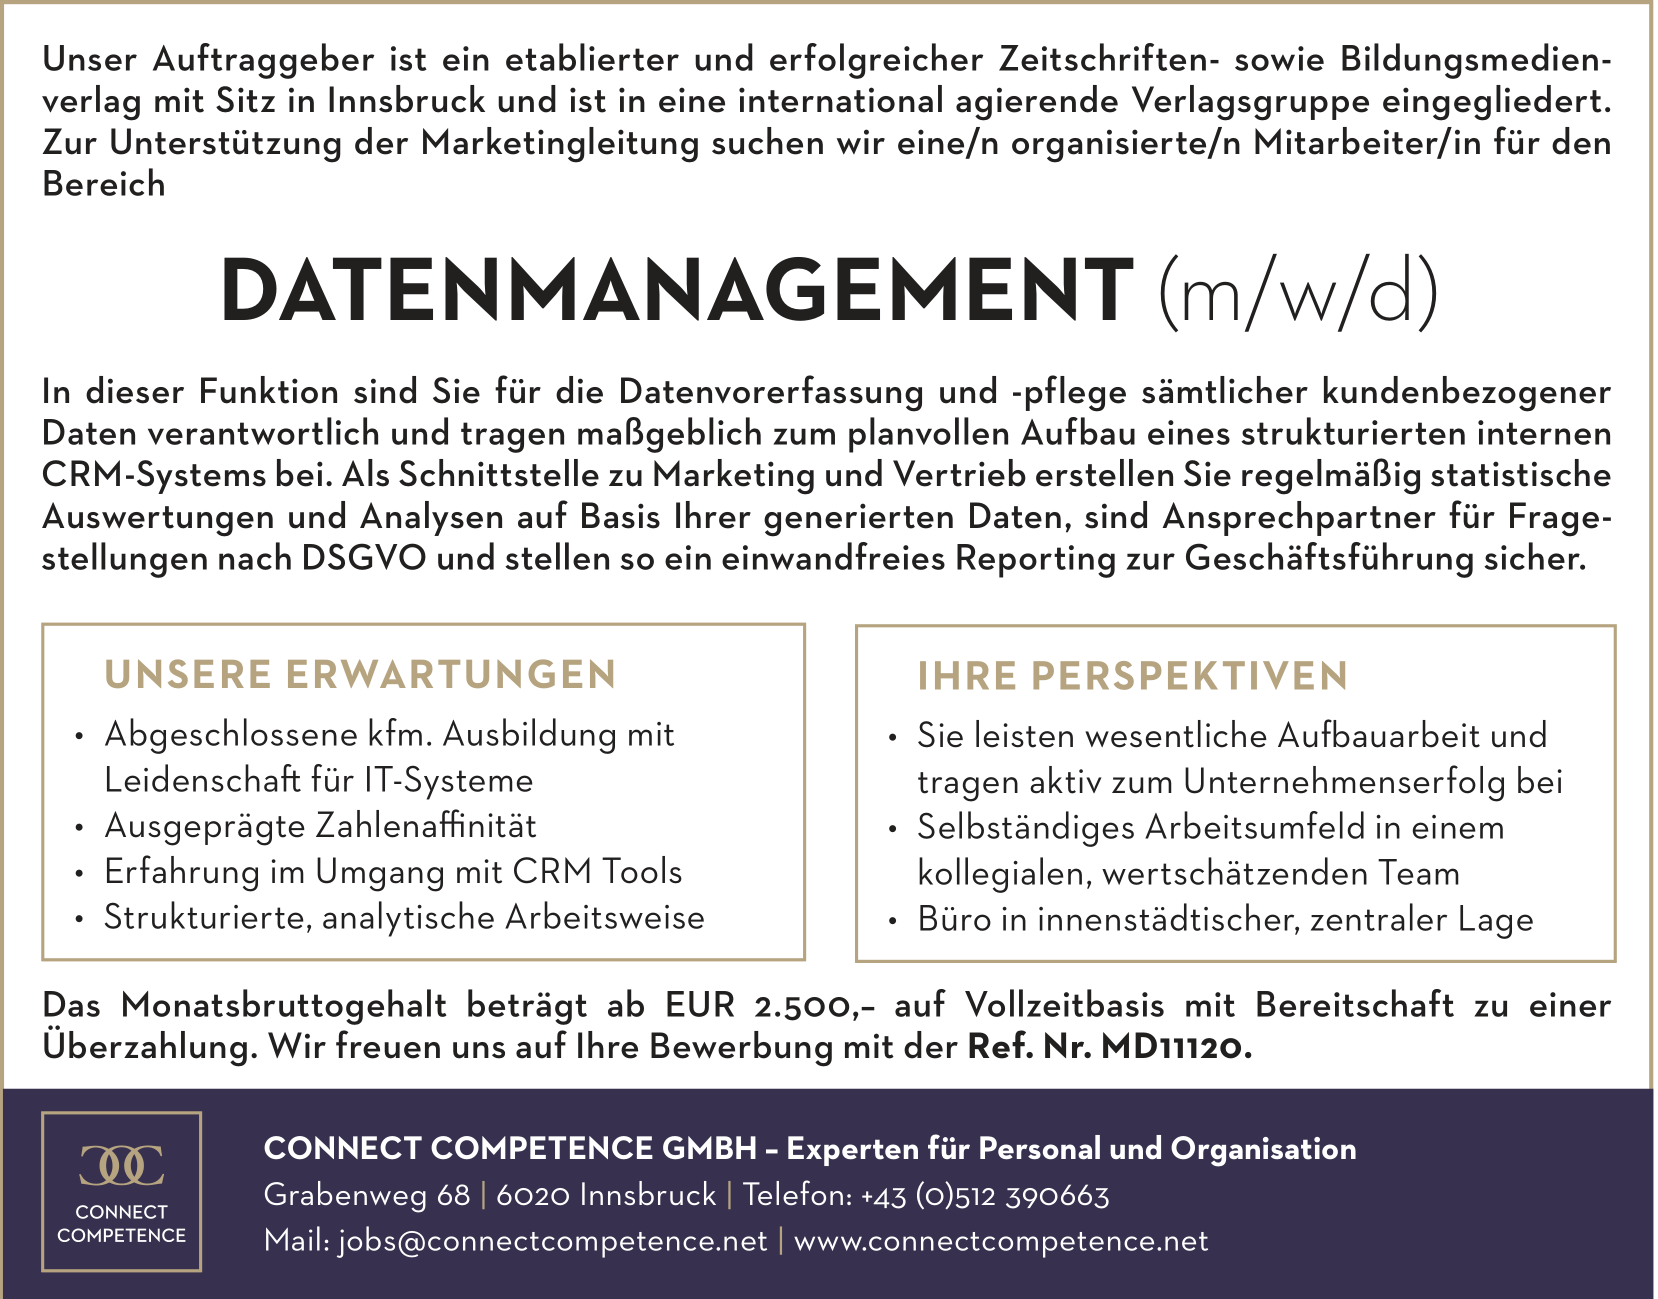 Datenmanagement (m/w/d)